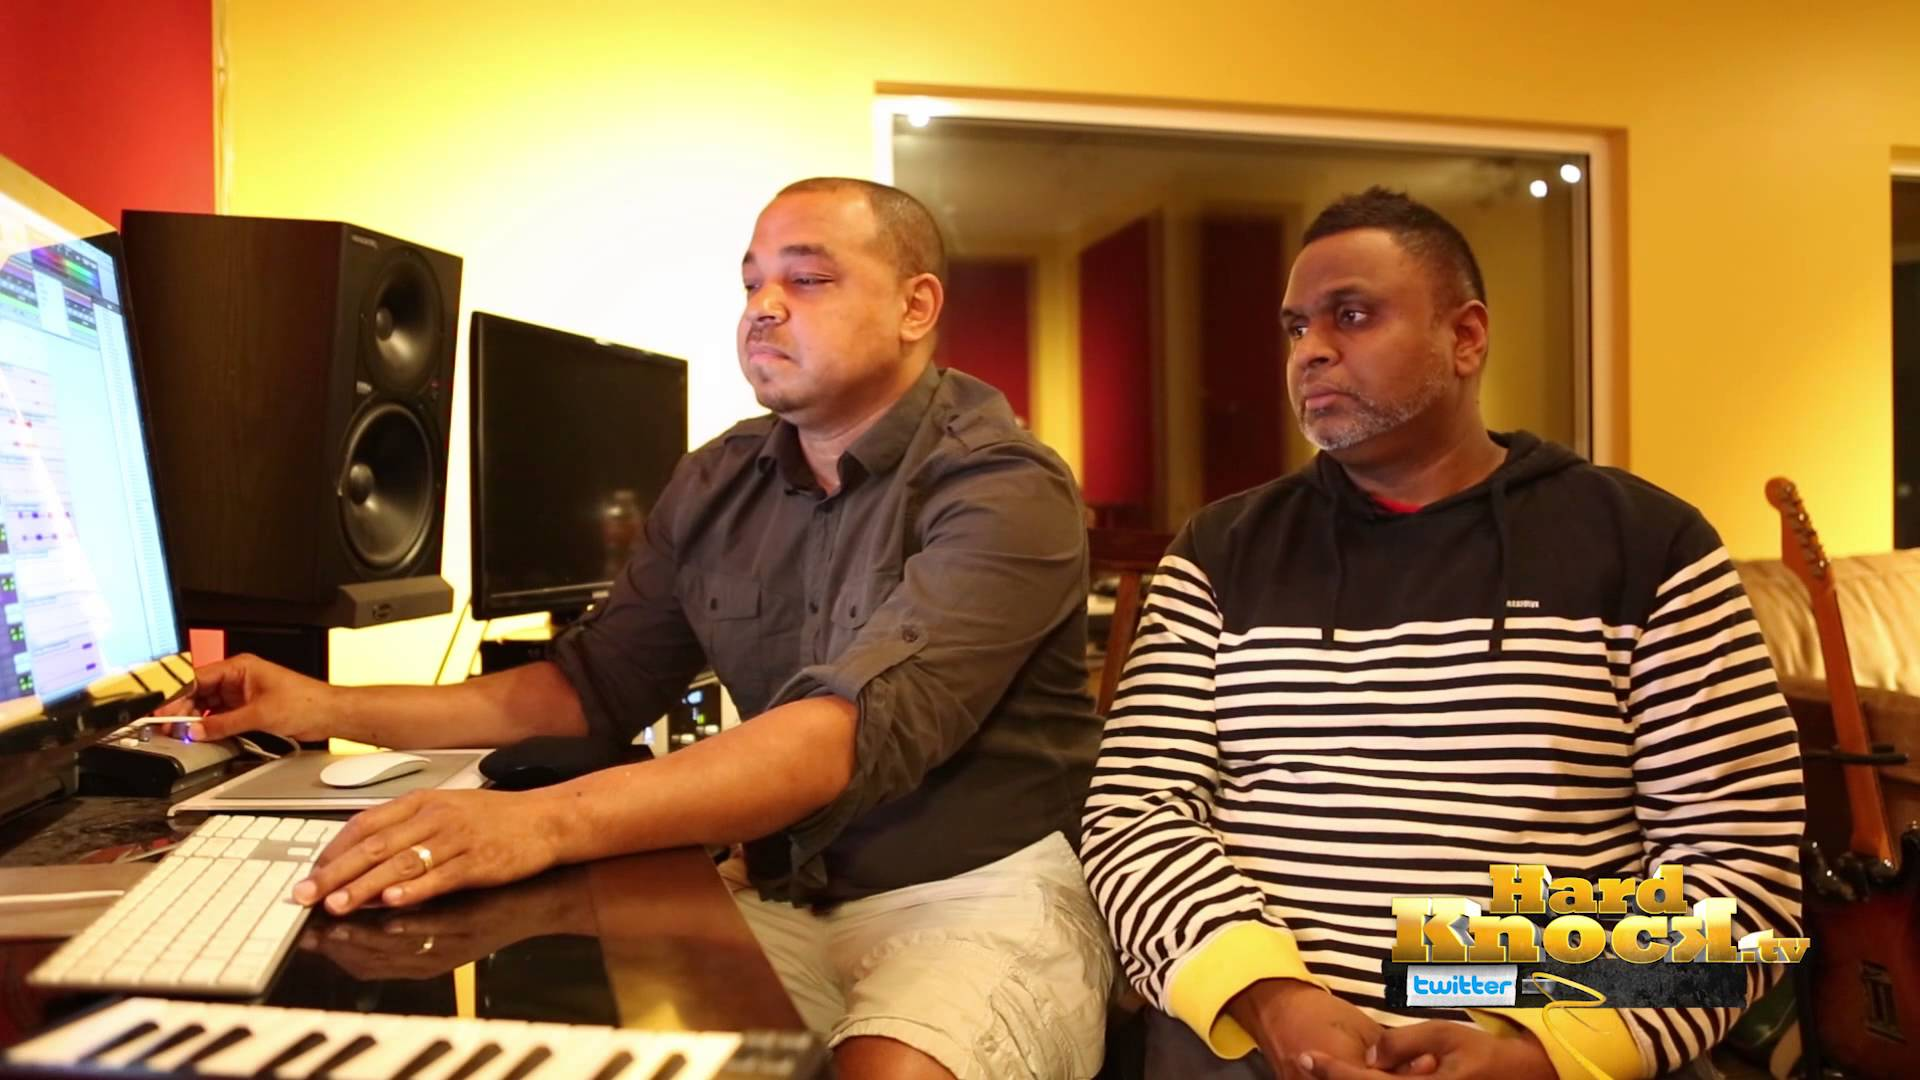 DJ Khalil Chin Injeti on How They Built Choir for Aloe Blacc The Man interview by Nick Huff Barili Hard knock tv